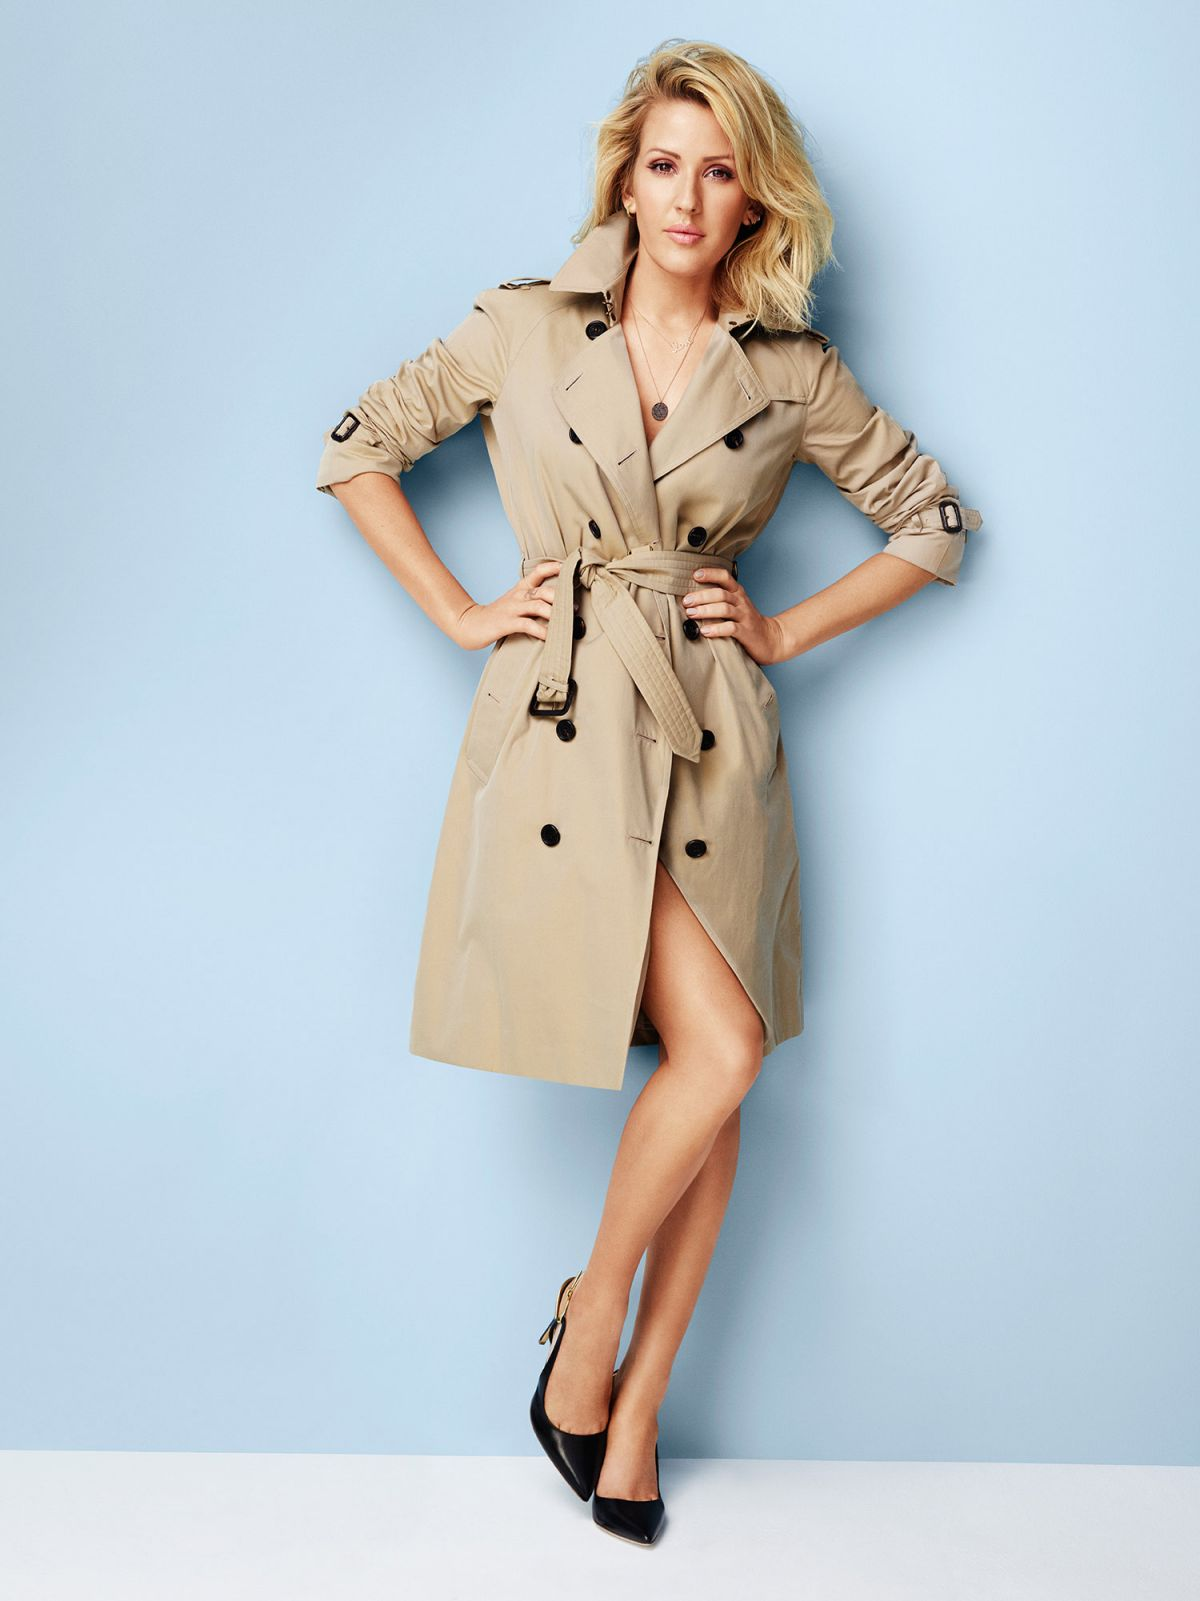 The Fall Bbc Wallpaper Ellie Goulding At Chris Craymer Photoshoot For Red March